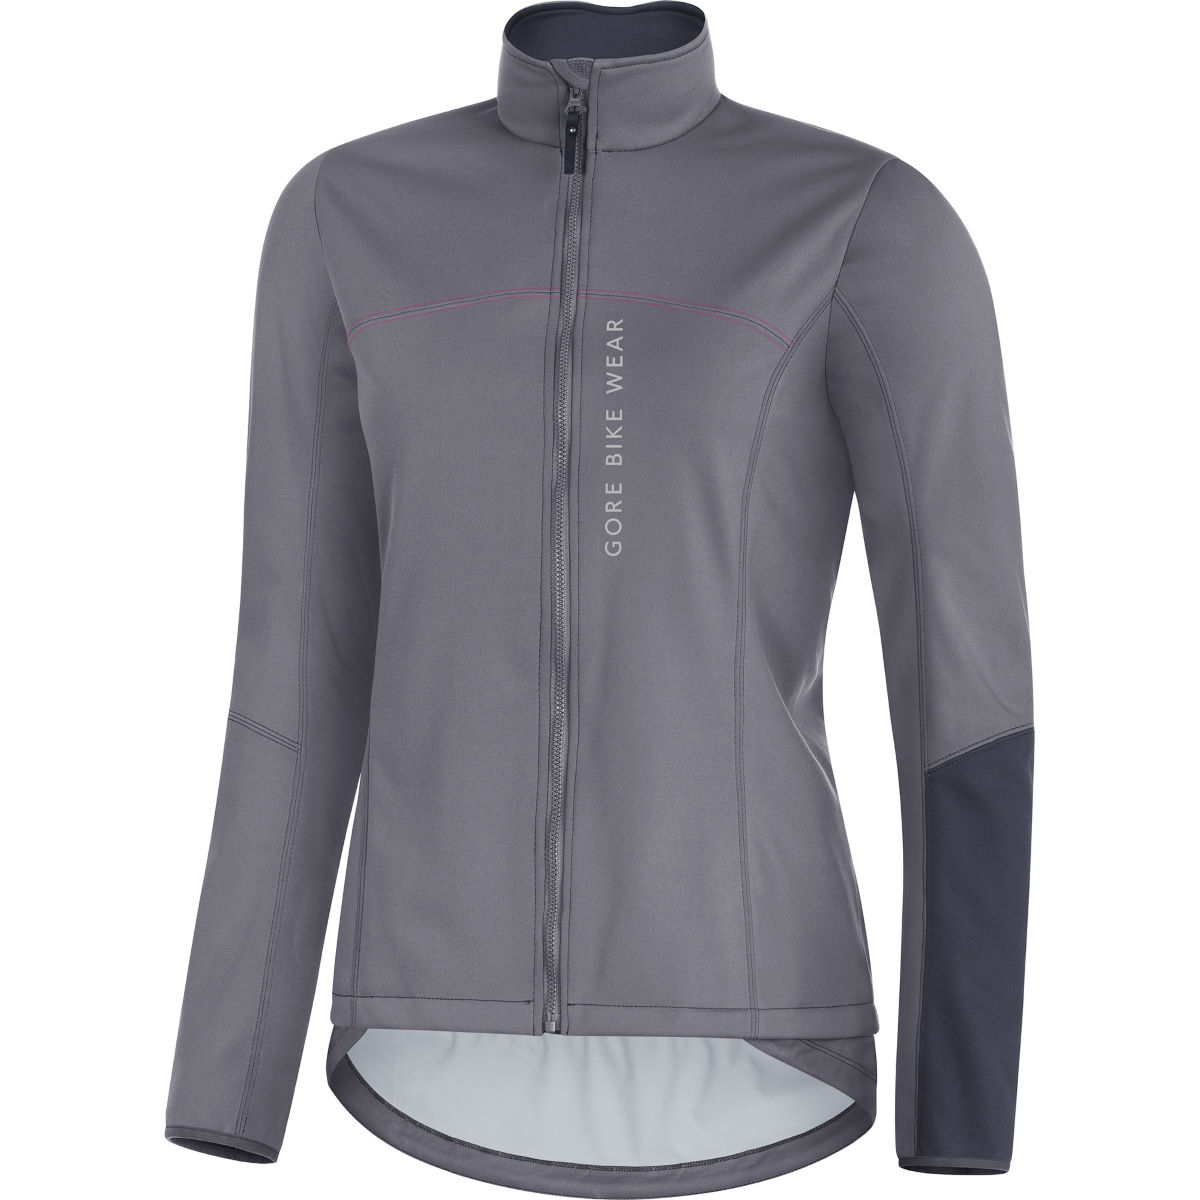 Veste Femme Gore Bike Wear Power GWS SO - X Small | Vestes